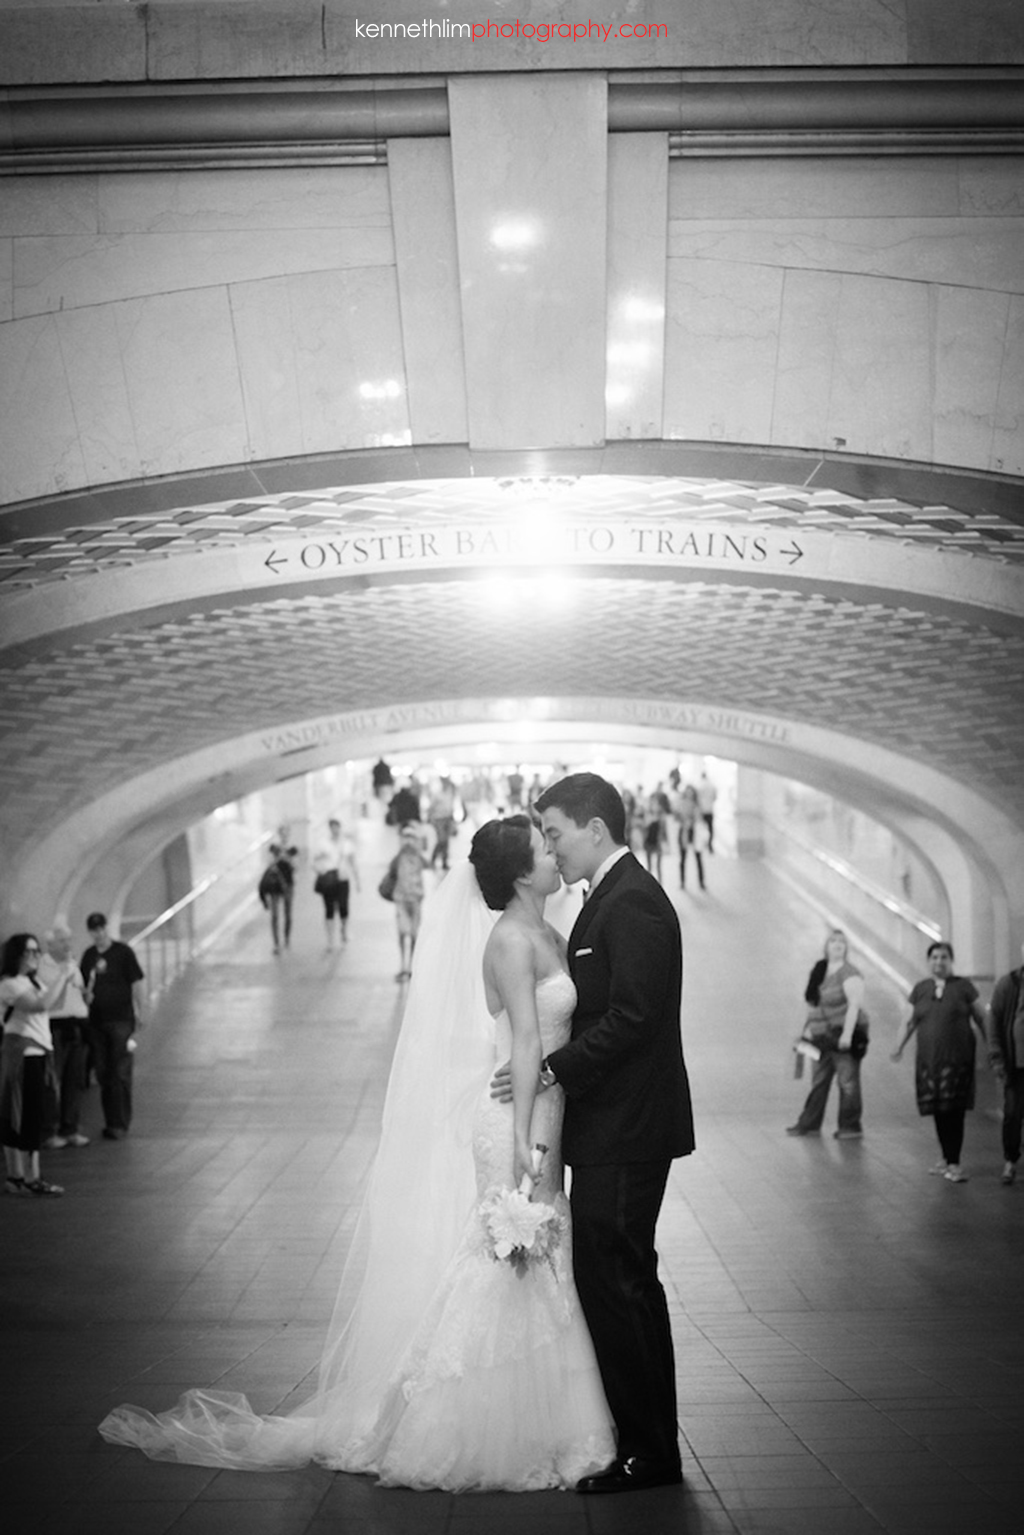 New York City Grand Central Station wedding day photography bride and groom kissing while holding hands